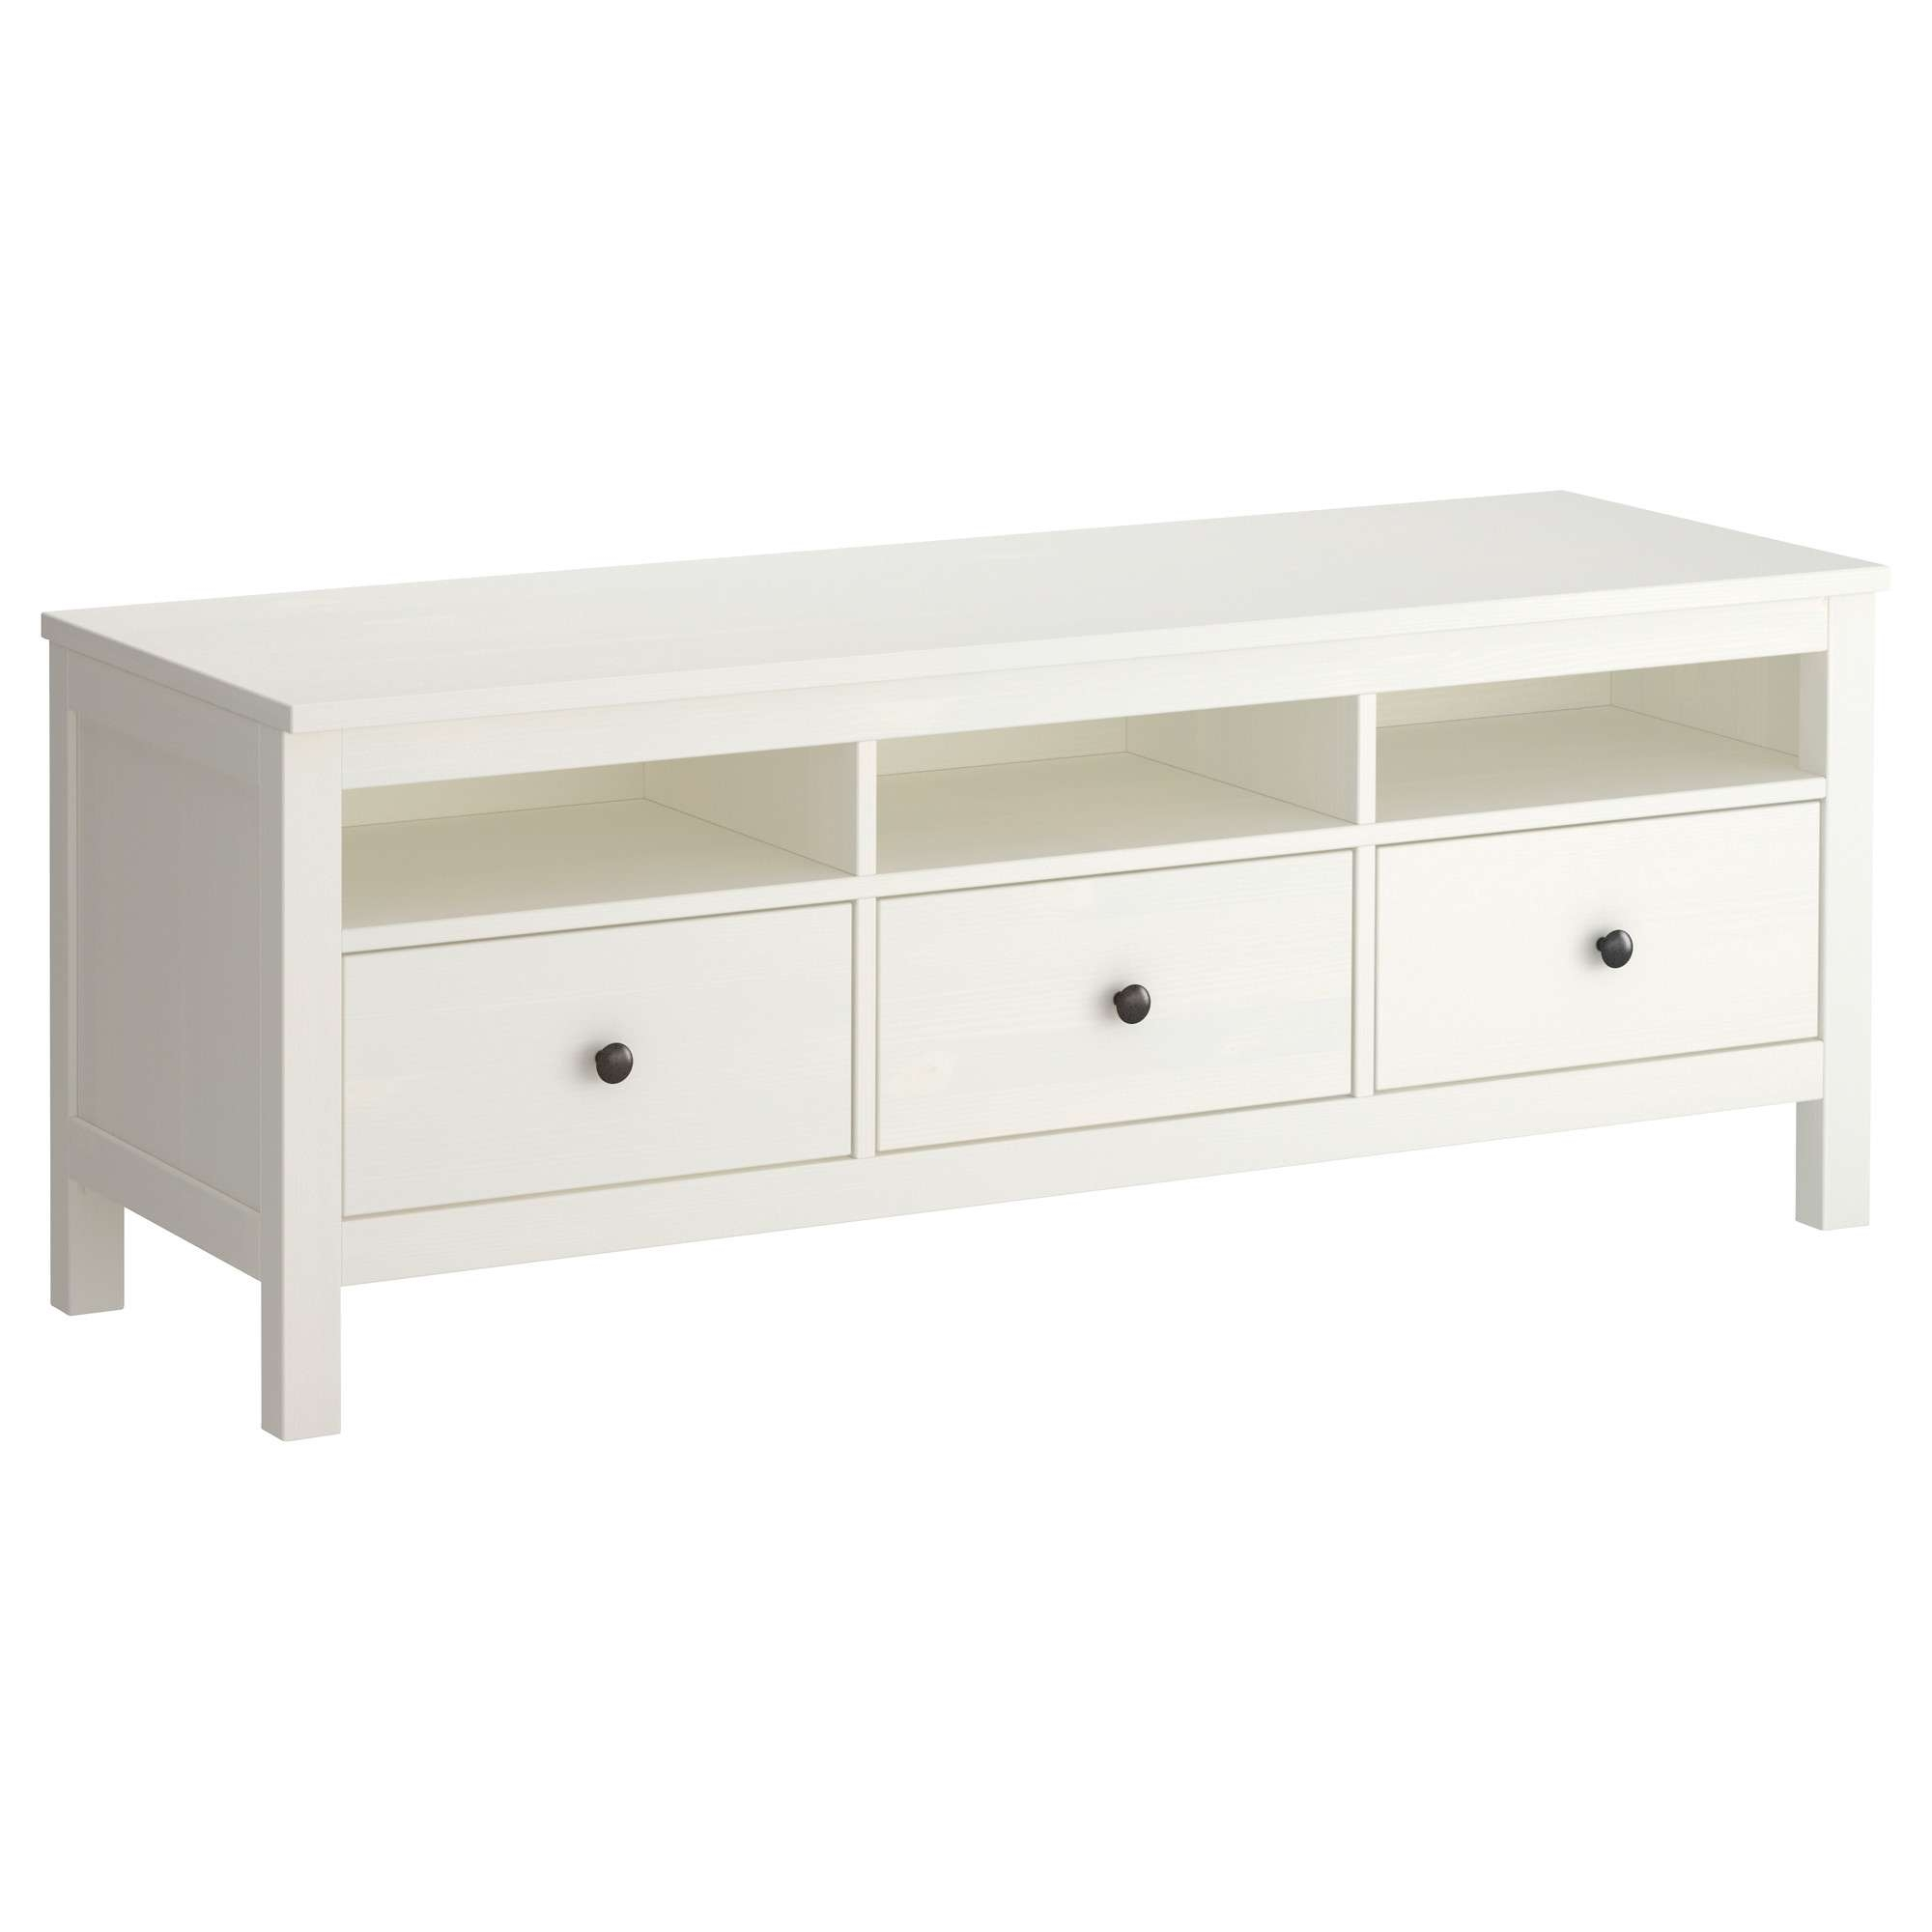 Hemnes Tv Bench White Stain 148x47 Cm – Ikea For White Wood Tv Stands (View 10 of 15)